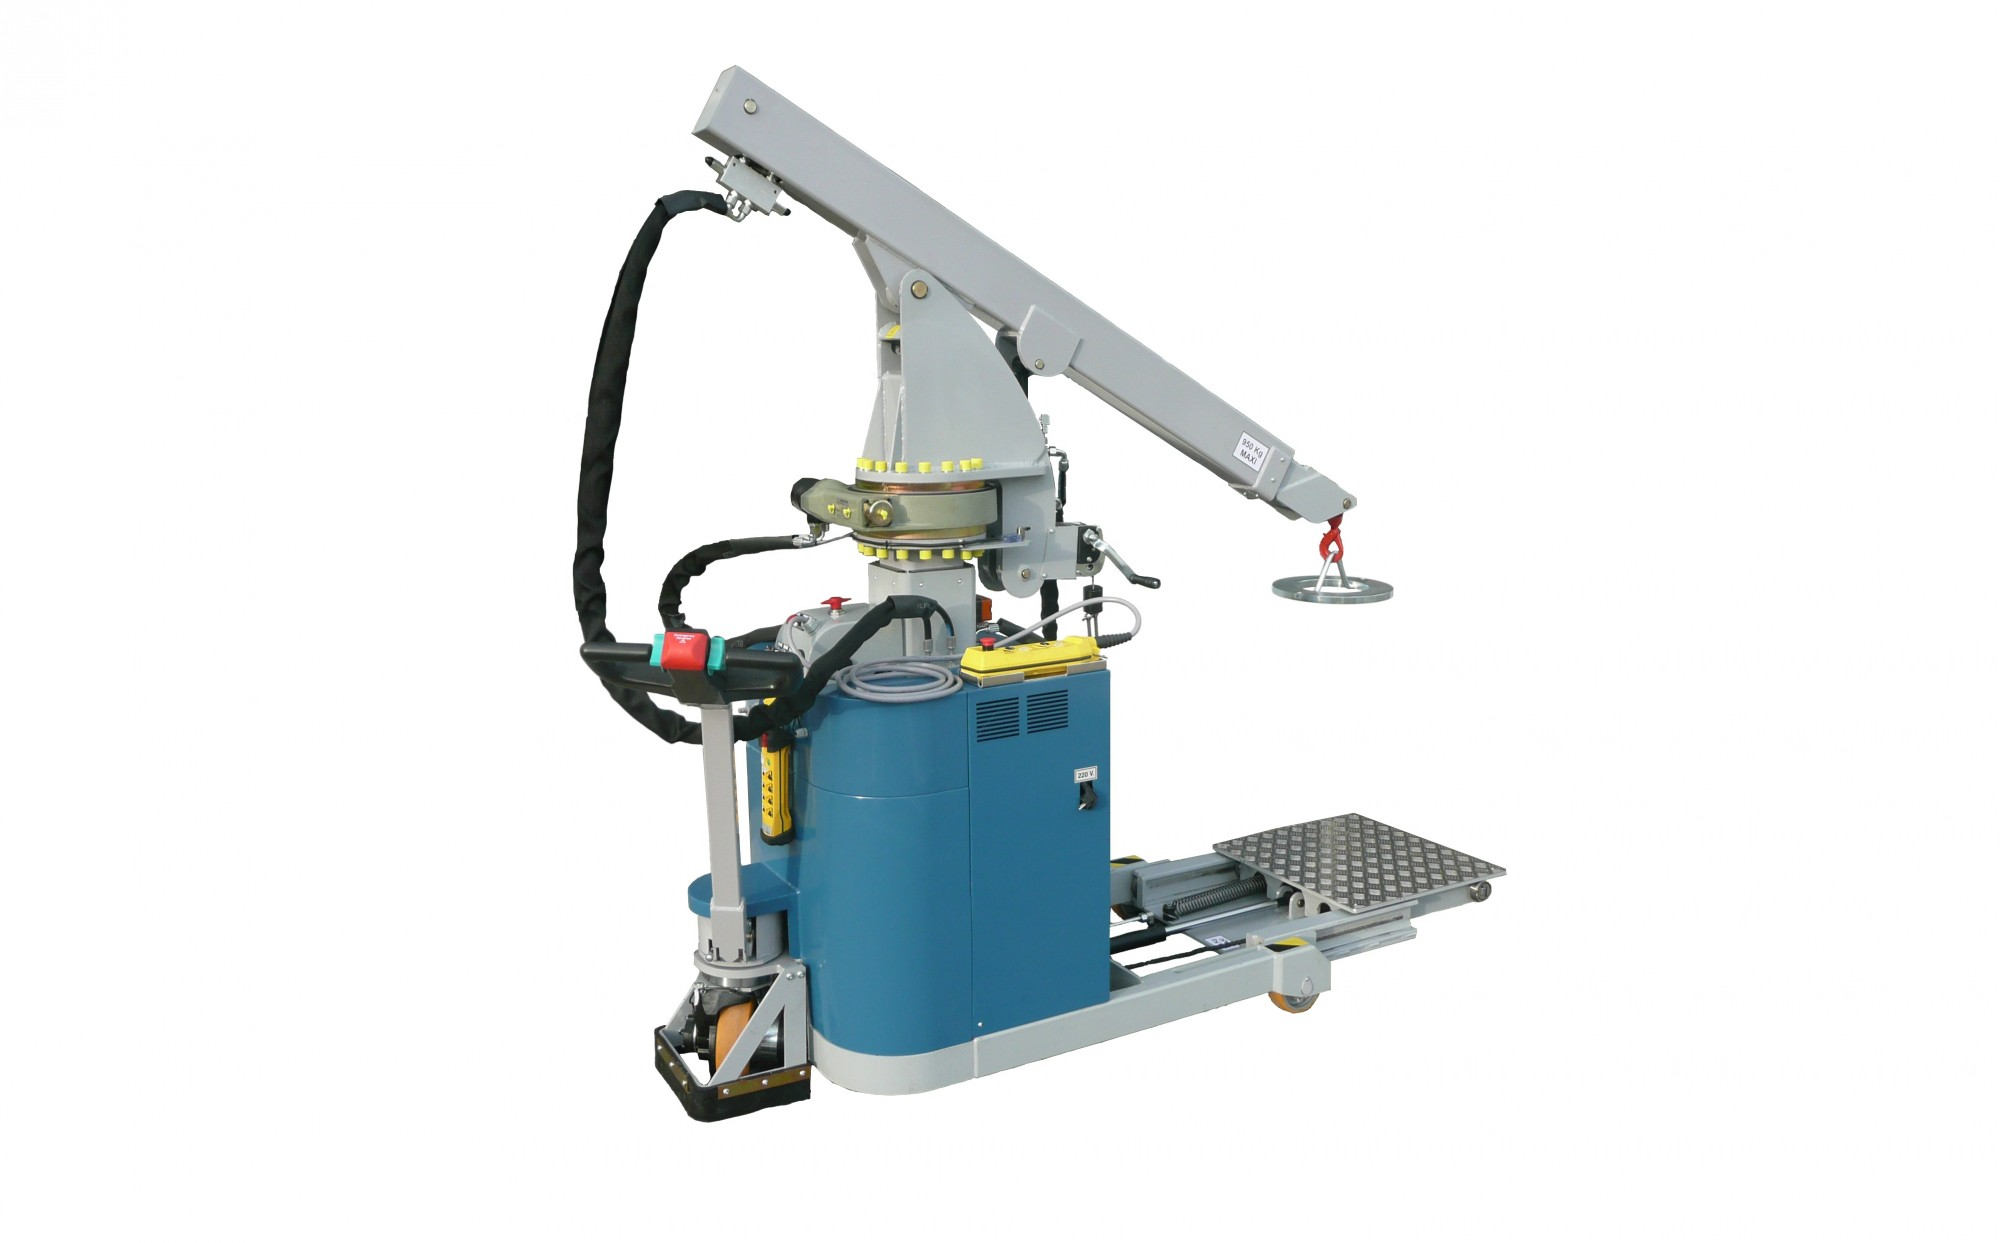 mini crane with sliding platform